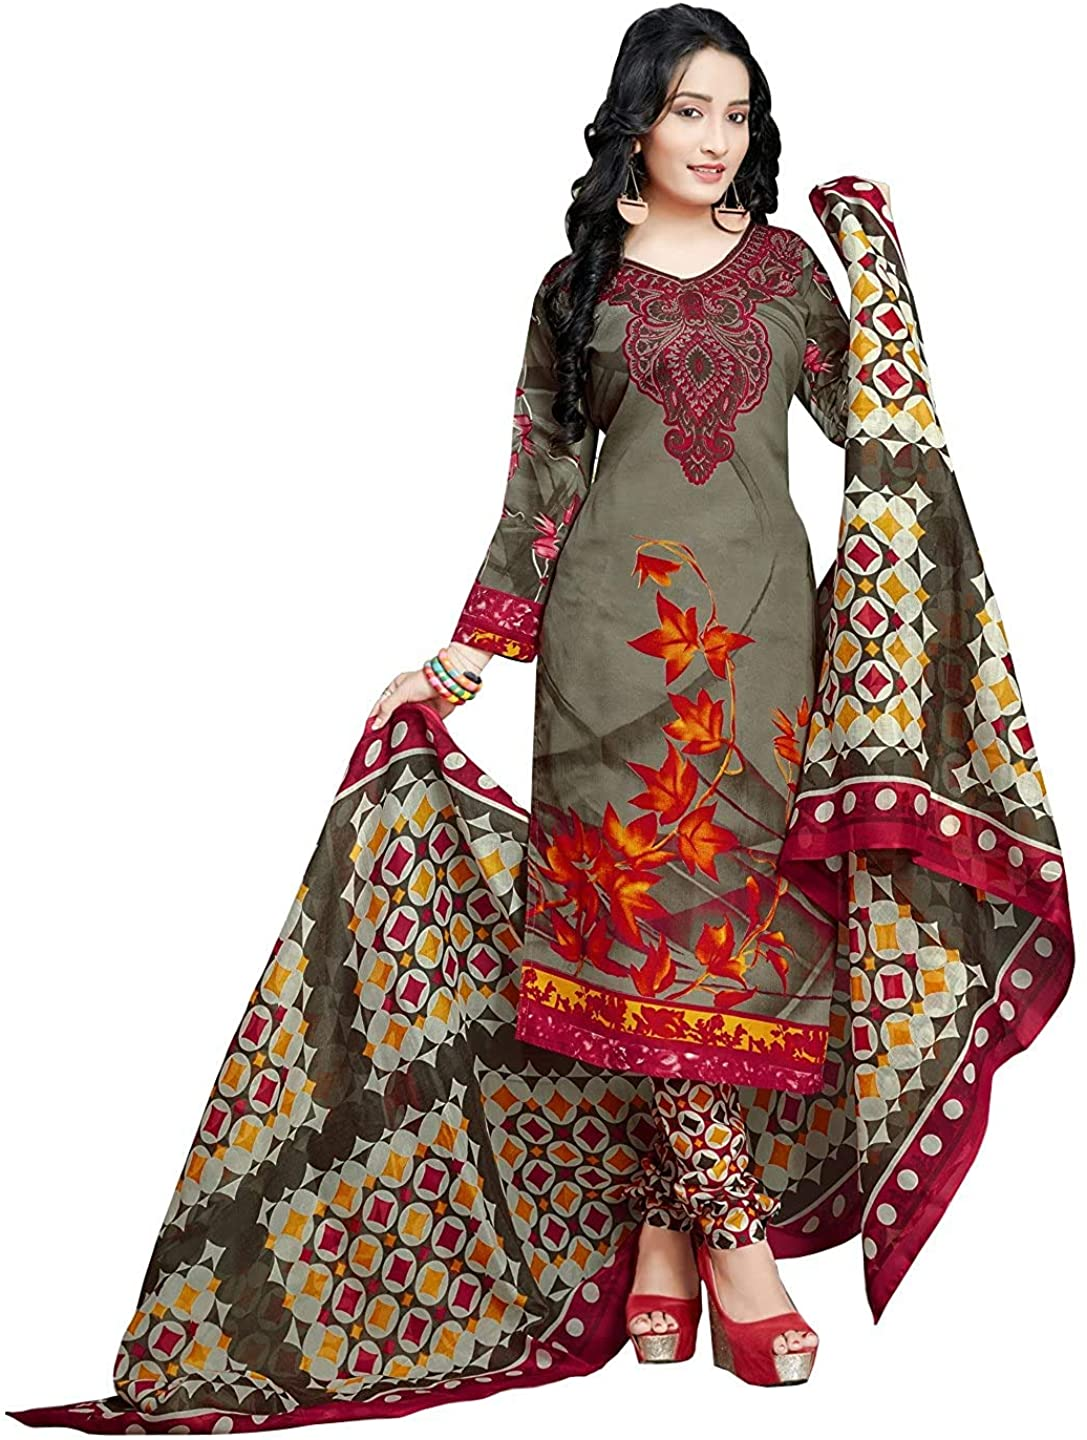 Indian Decor & Attire Women's Olive Green Cotton Printed Unstitched Salwar Suit Material (Free Size)